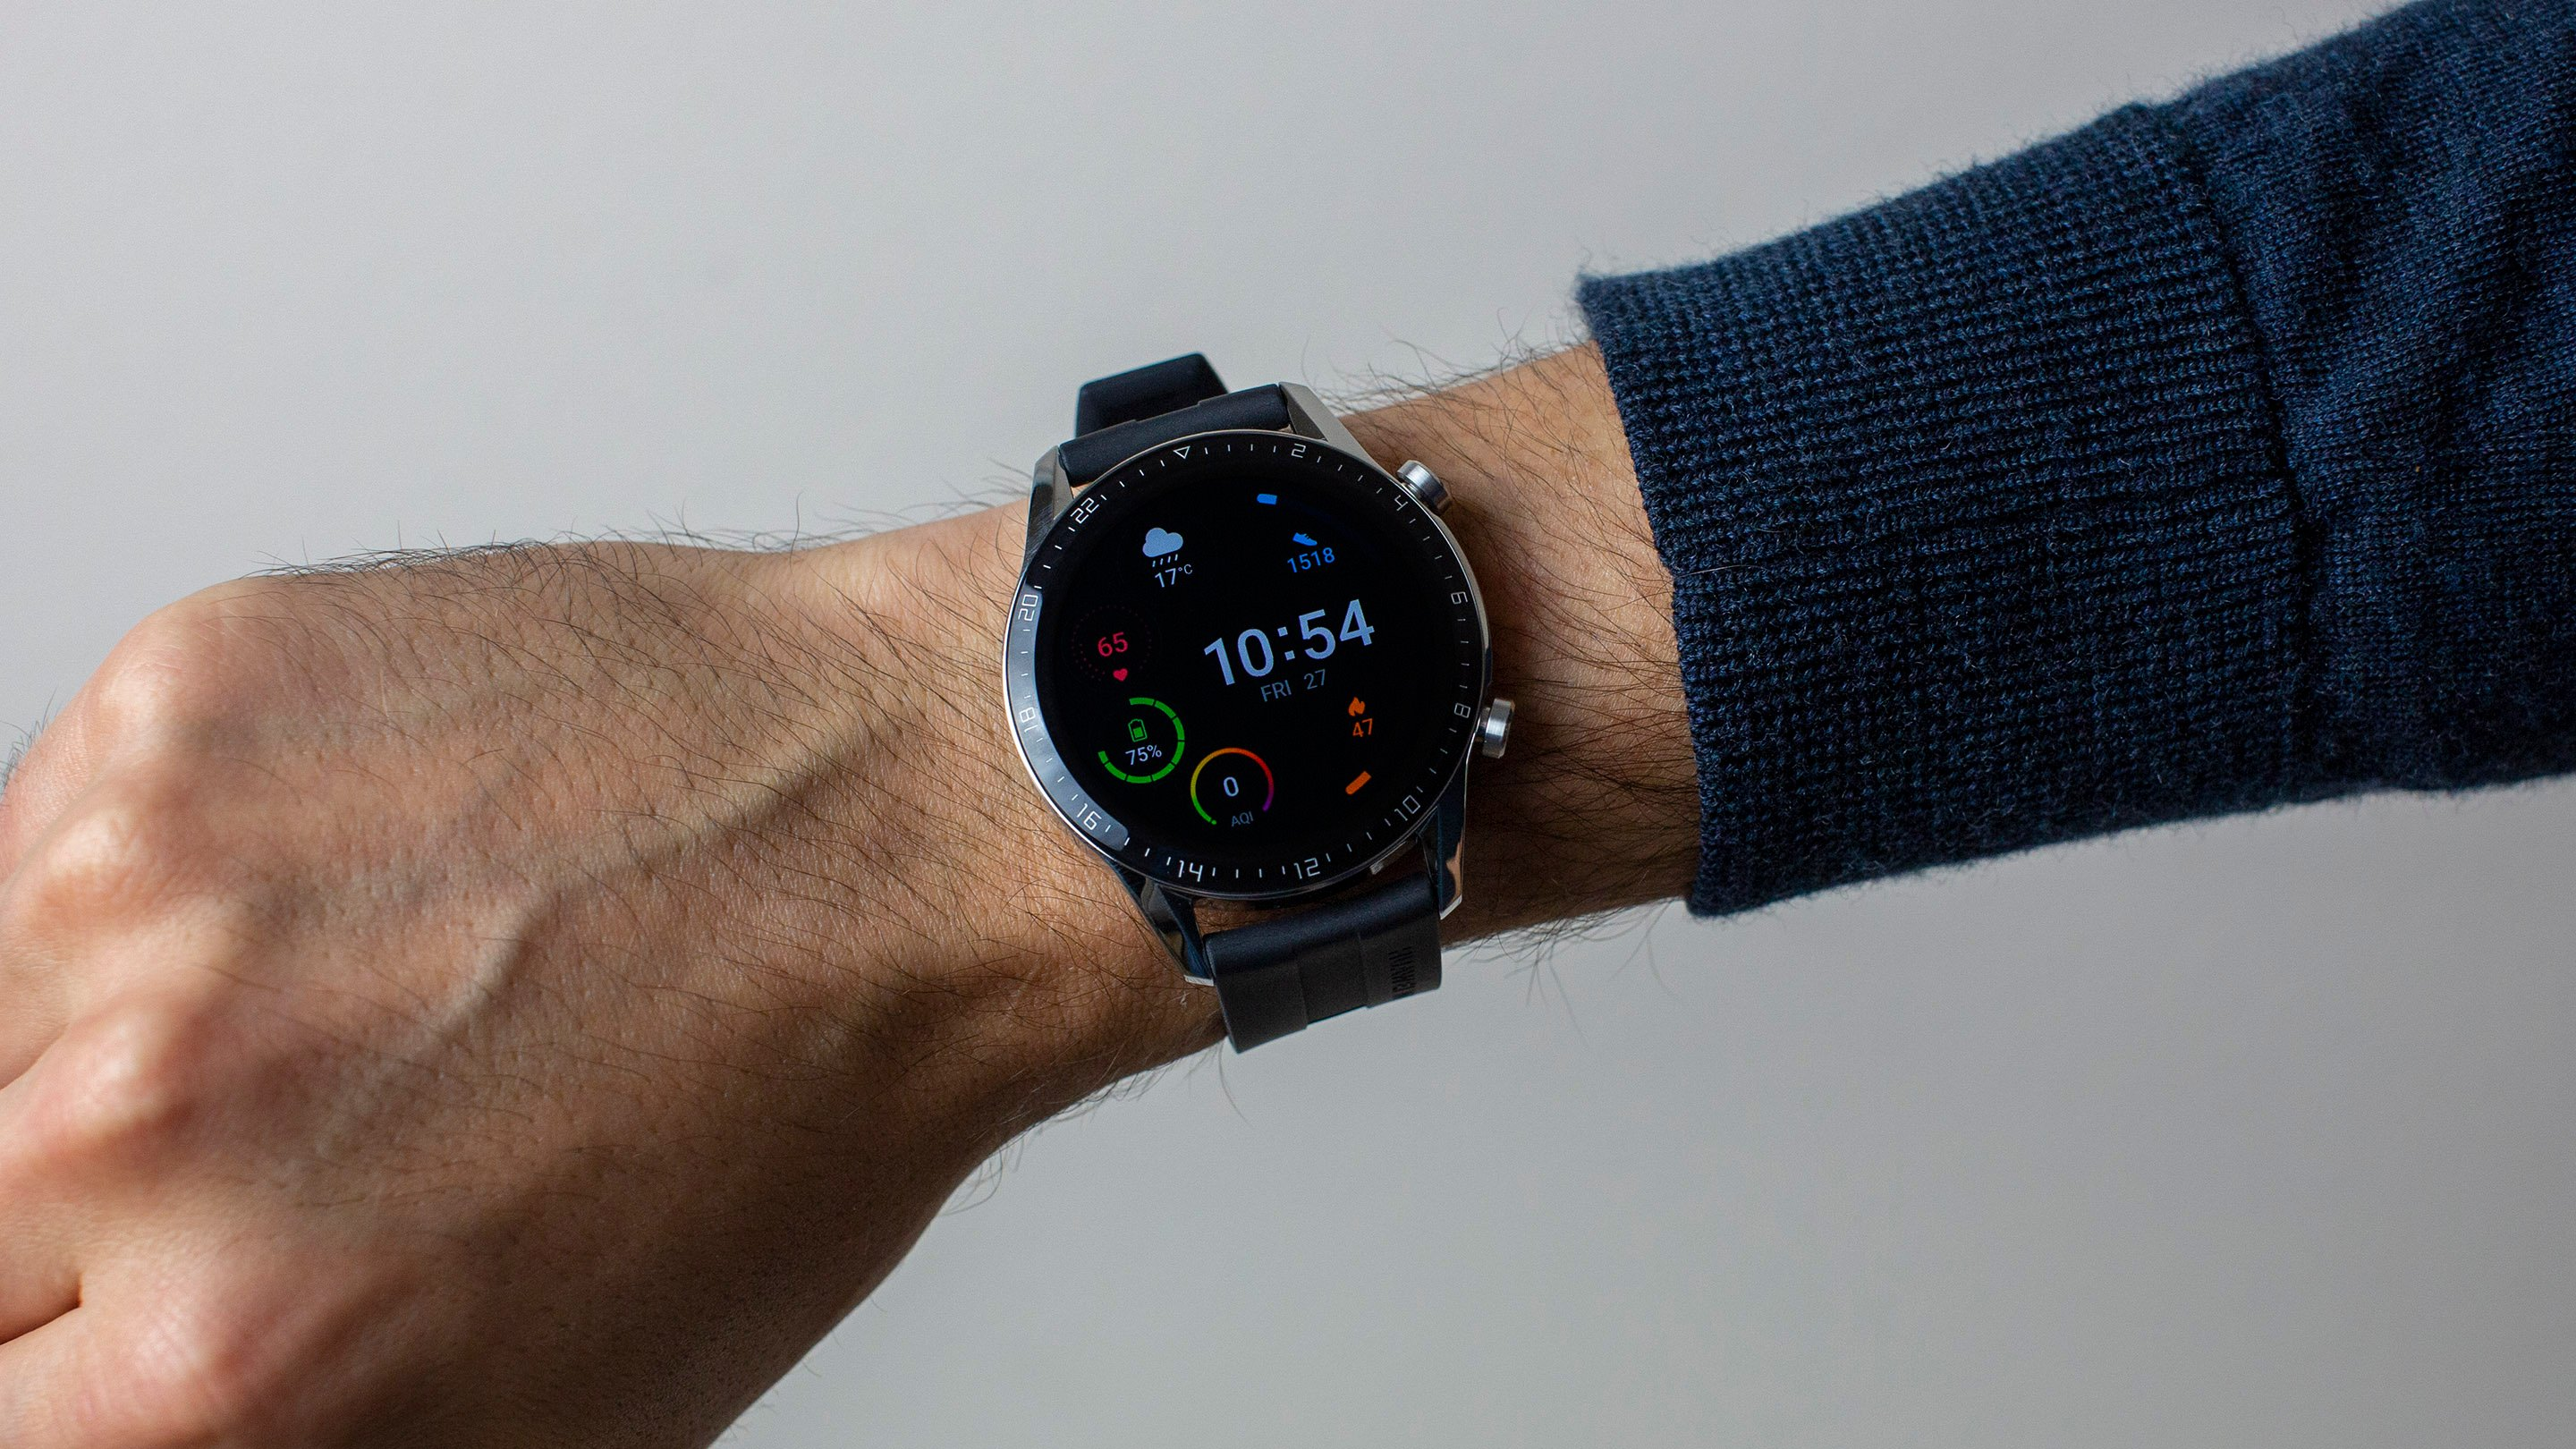 Image result for Huawei watch gt2 - 4 HD Images